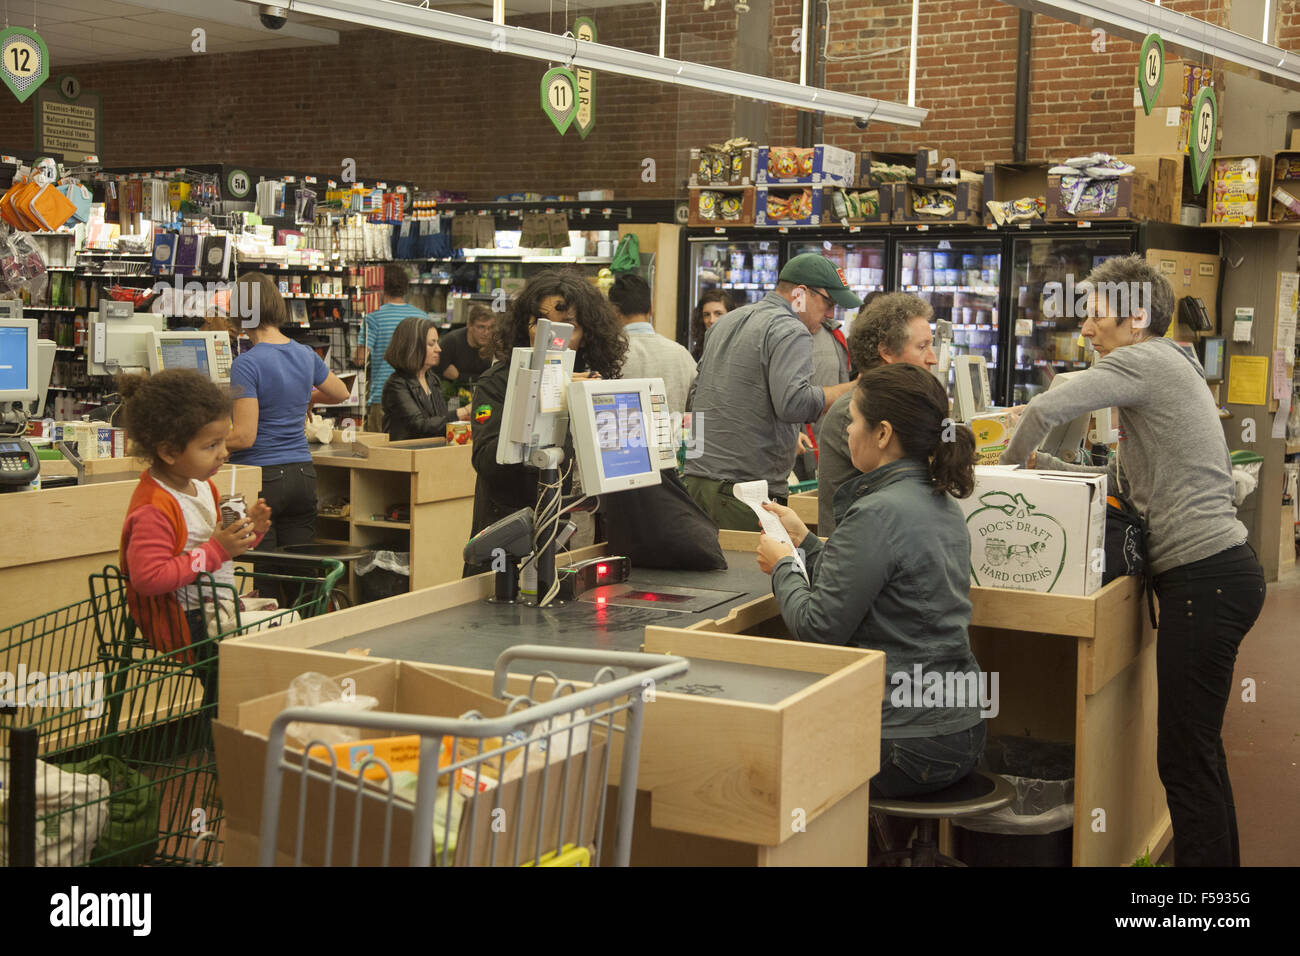 Grocery Store Check Out Counters